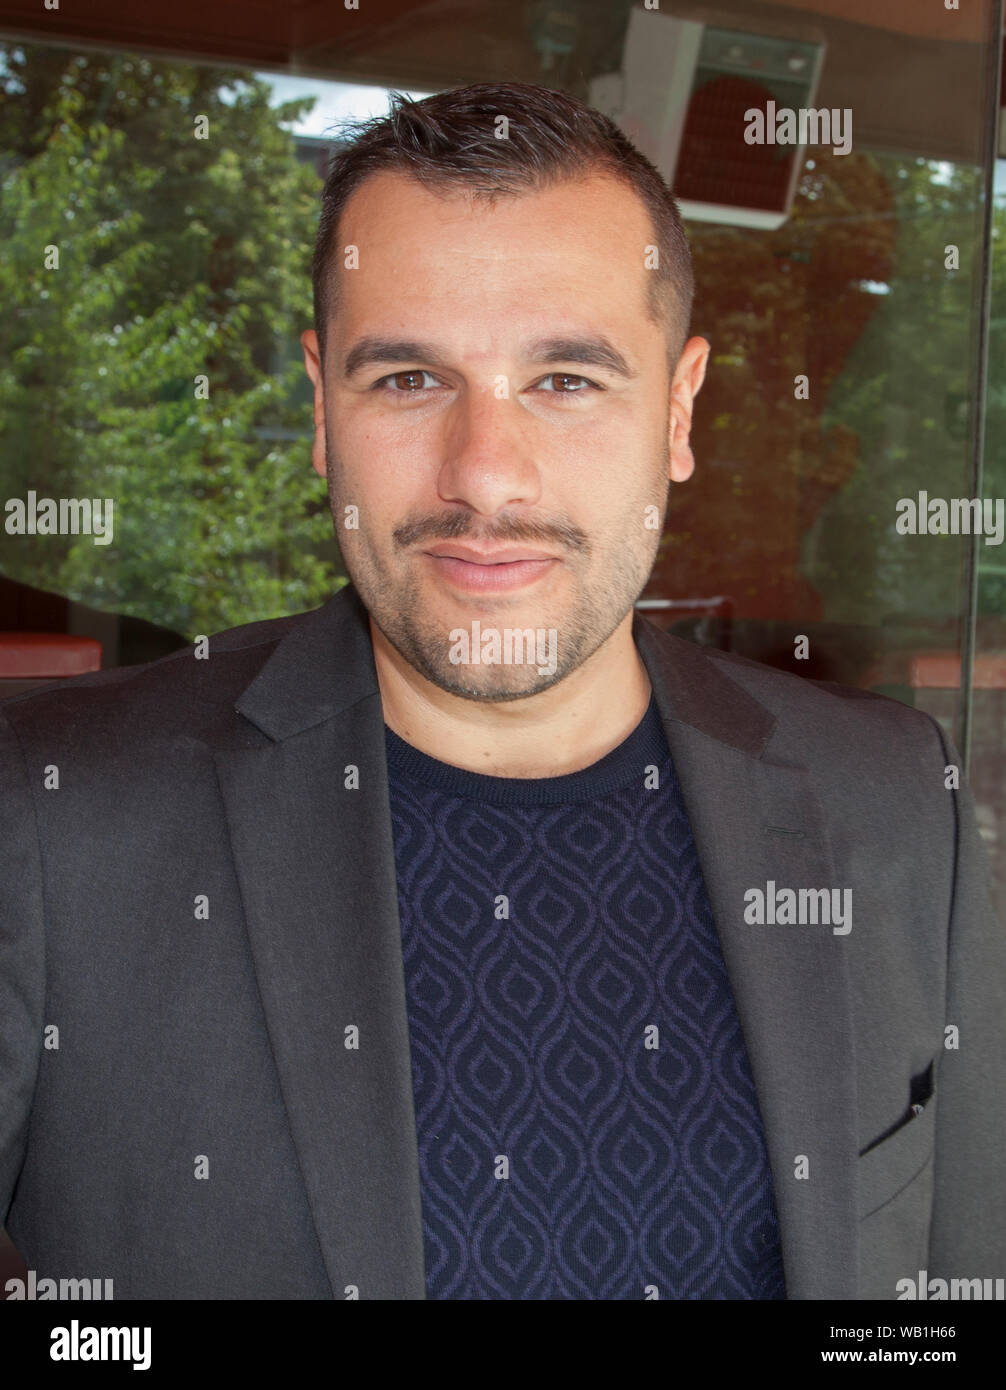 Edward Af Sillen Swedish Screenwriter And Director For Stage Film And Television He Has Worked On The Eurovision Song Contest As A Director Stock Photo Alamy